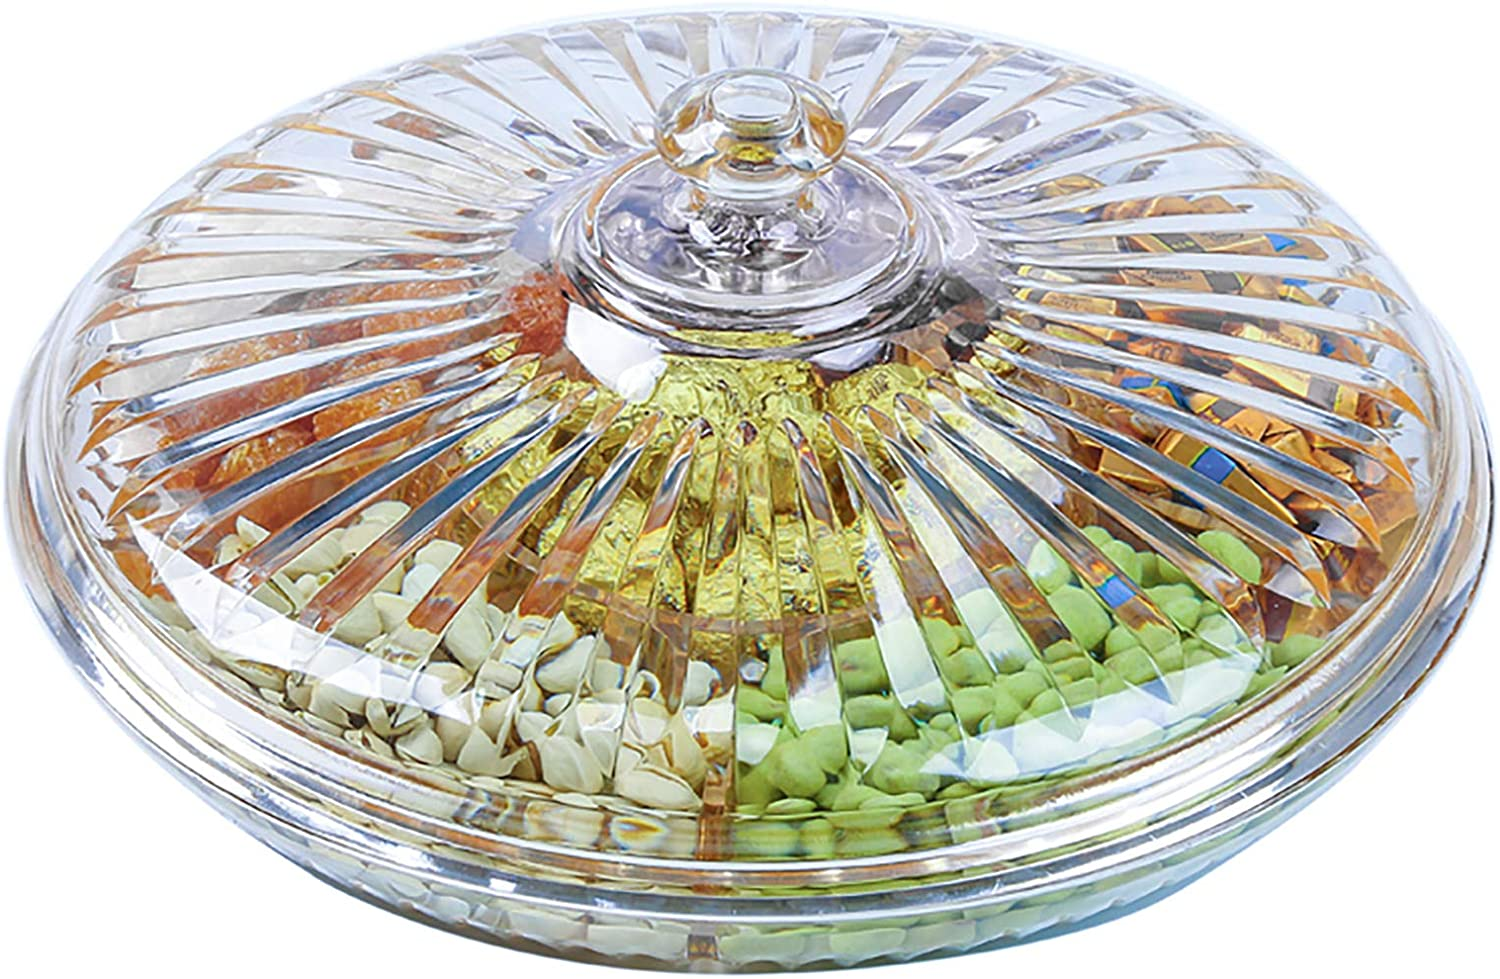 Yesland 12-3/8 Inches Snack Serving Tray Set with Lid, Acrylic Appetizers/Food Tray with 6 Sections for Parties, Holidays, Family Dinner